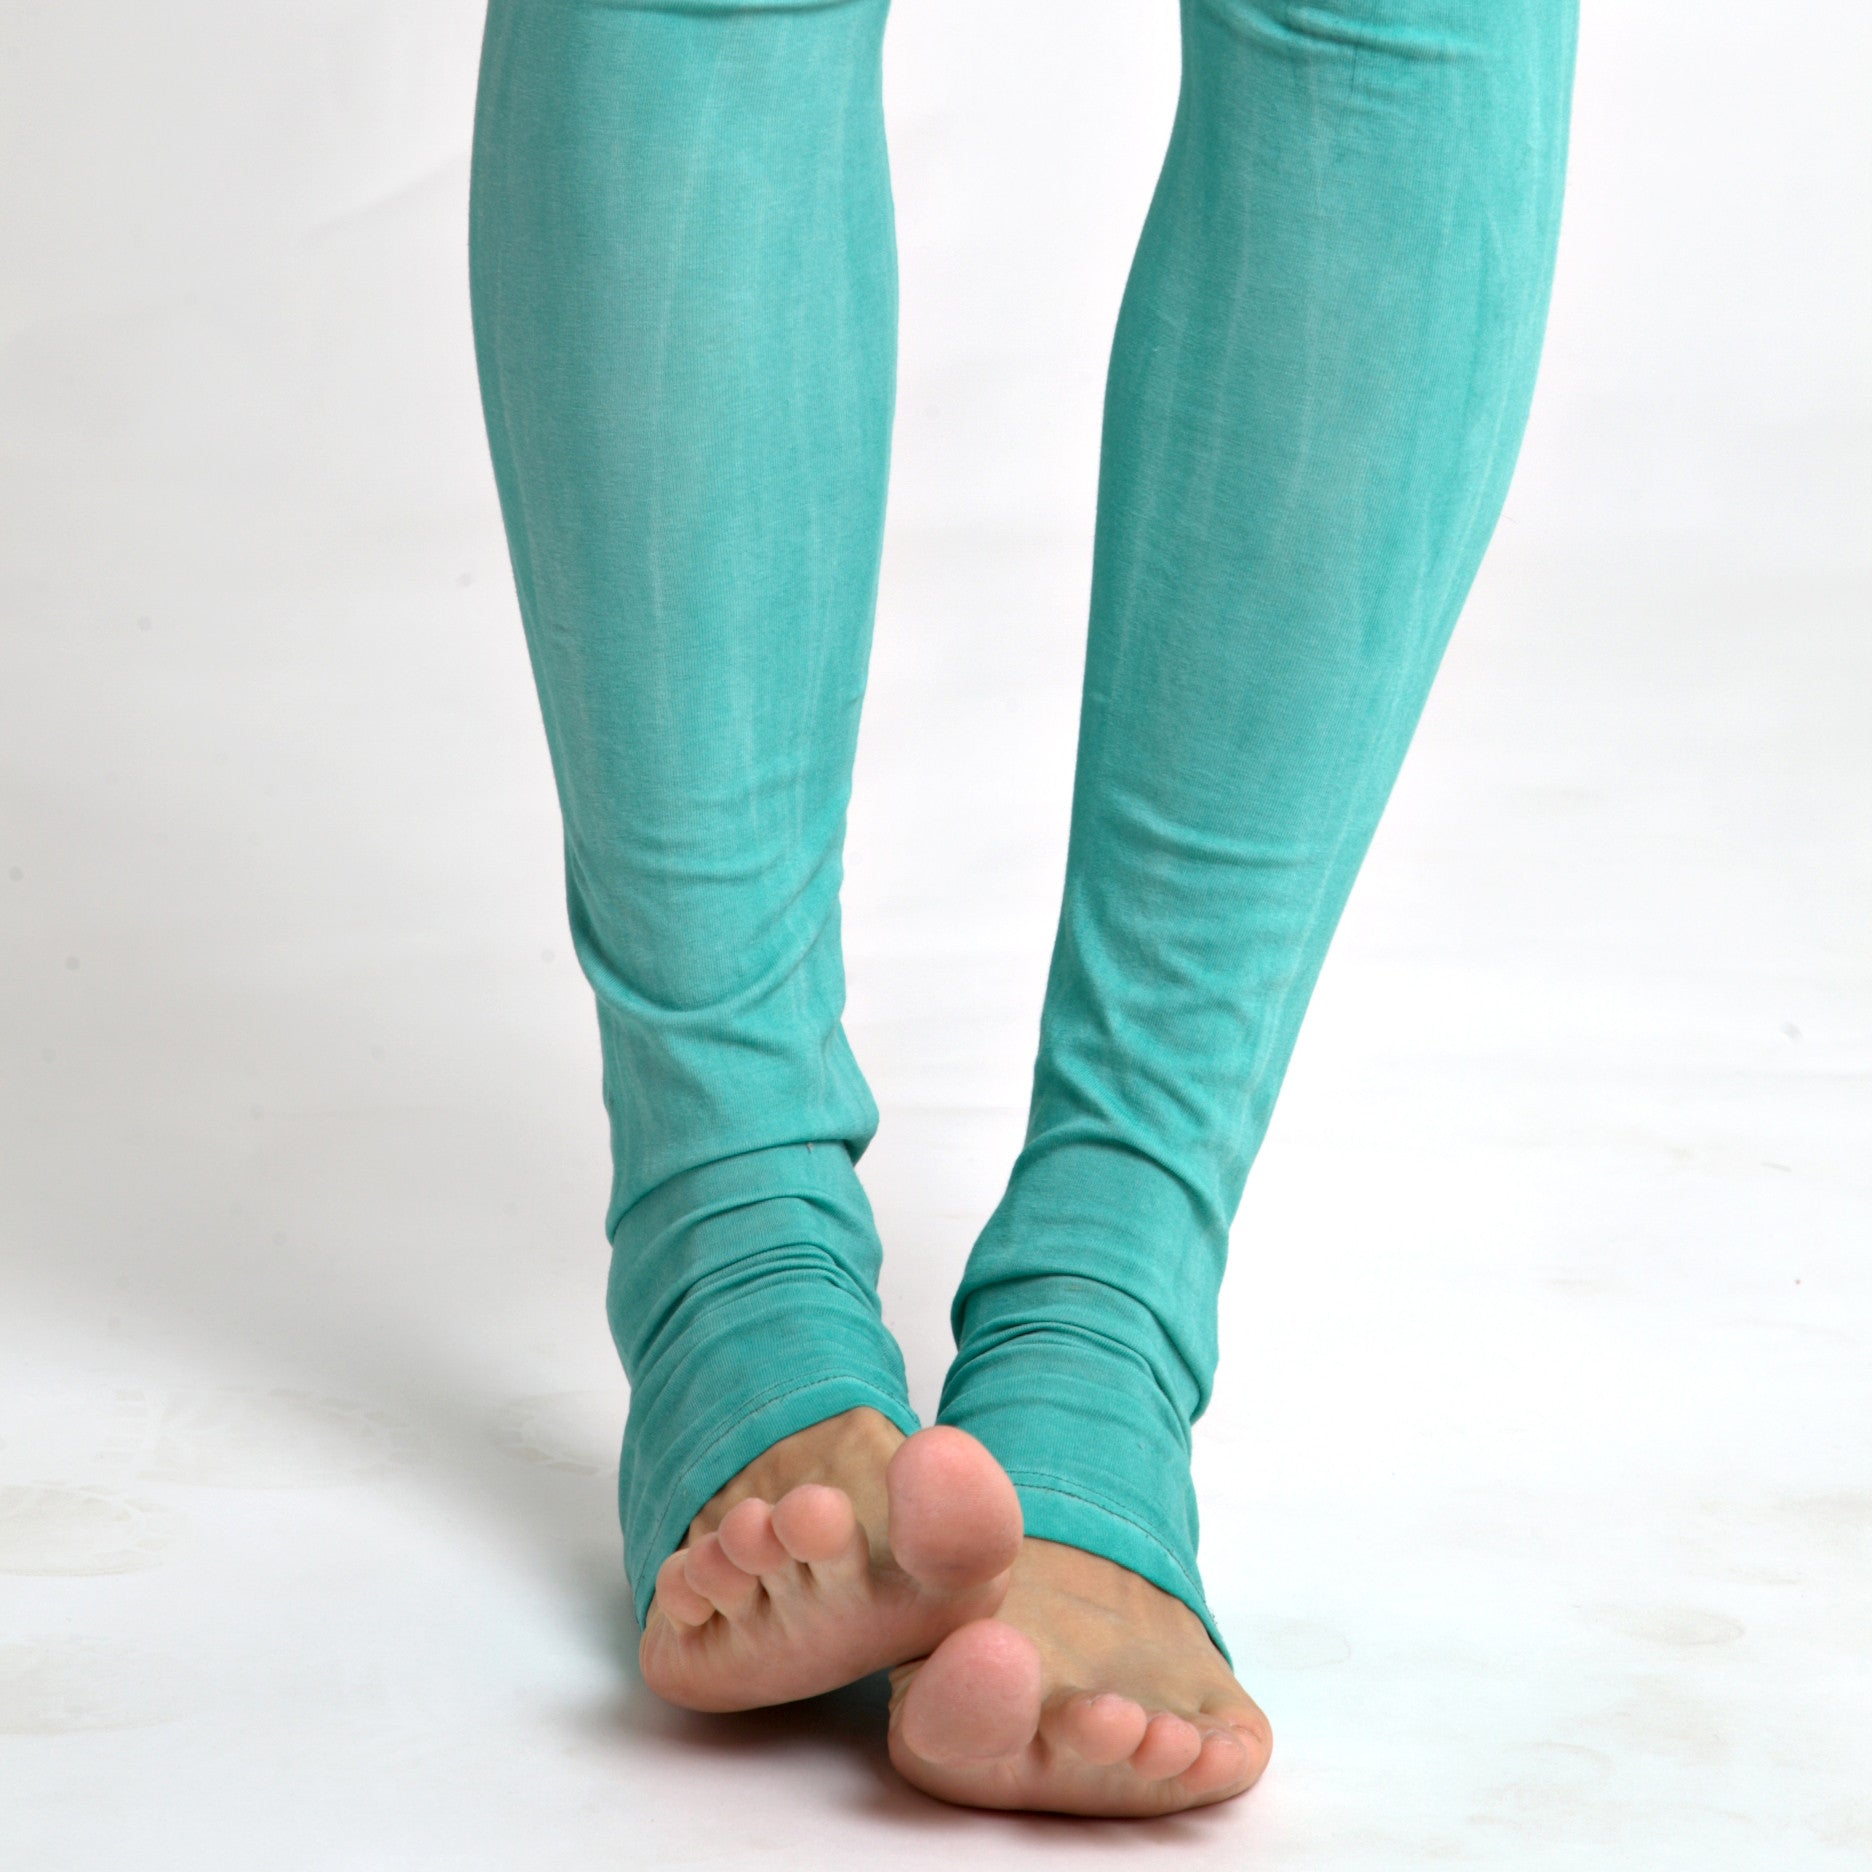 Leggings in stone wash mint - DuendeFashion  - 2